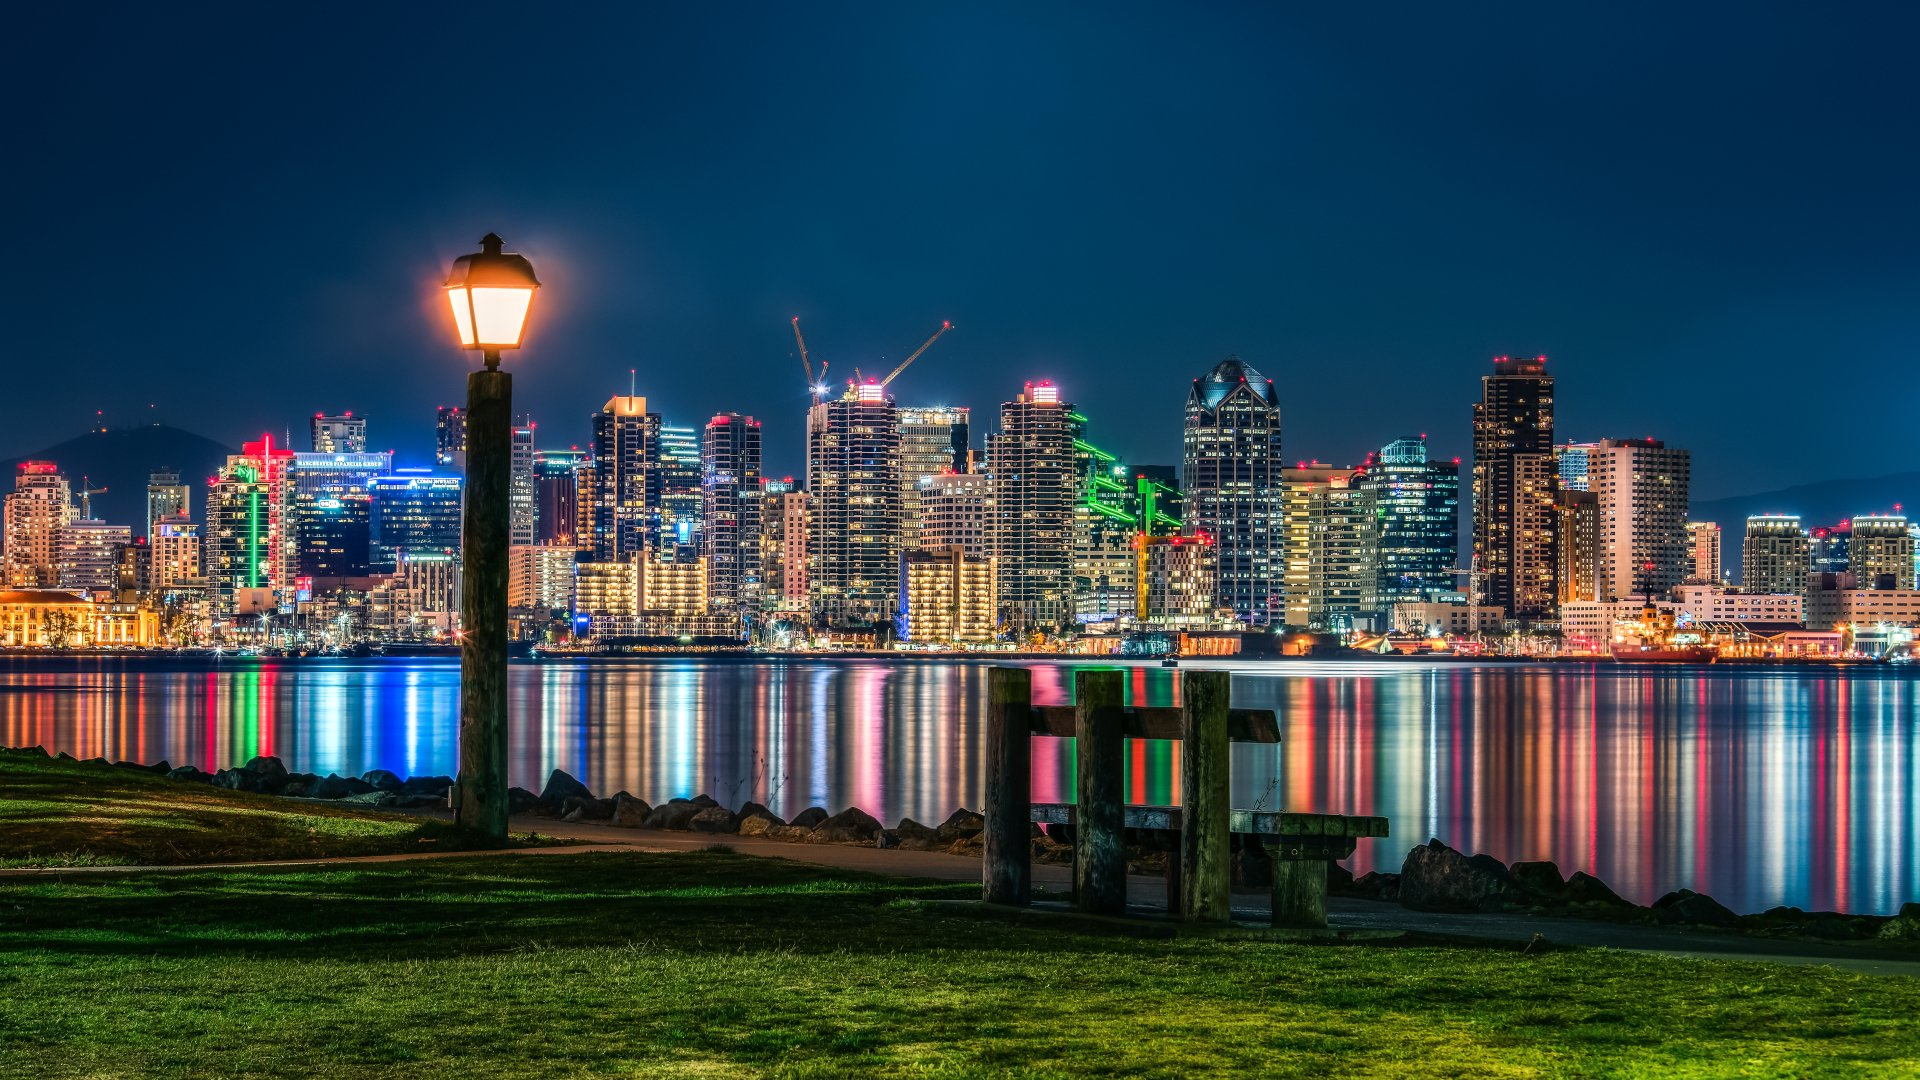 Man Made - San Diego  City California Night Water Light Reflection Wallpaper